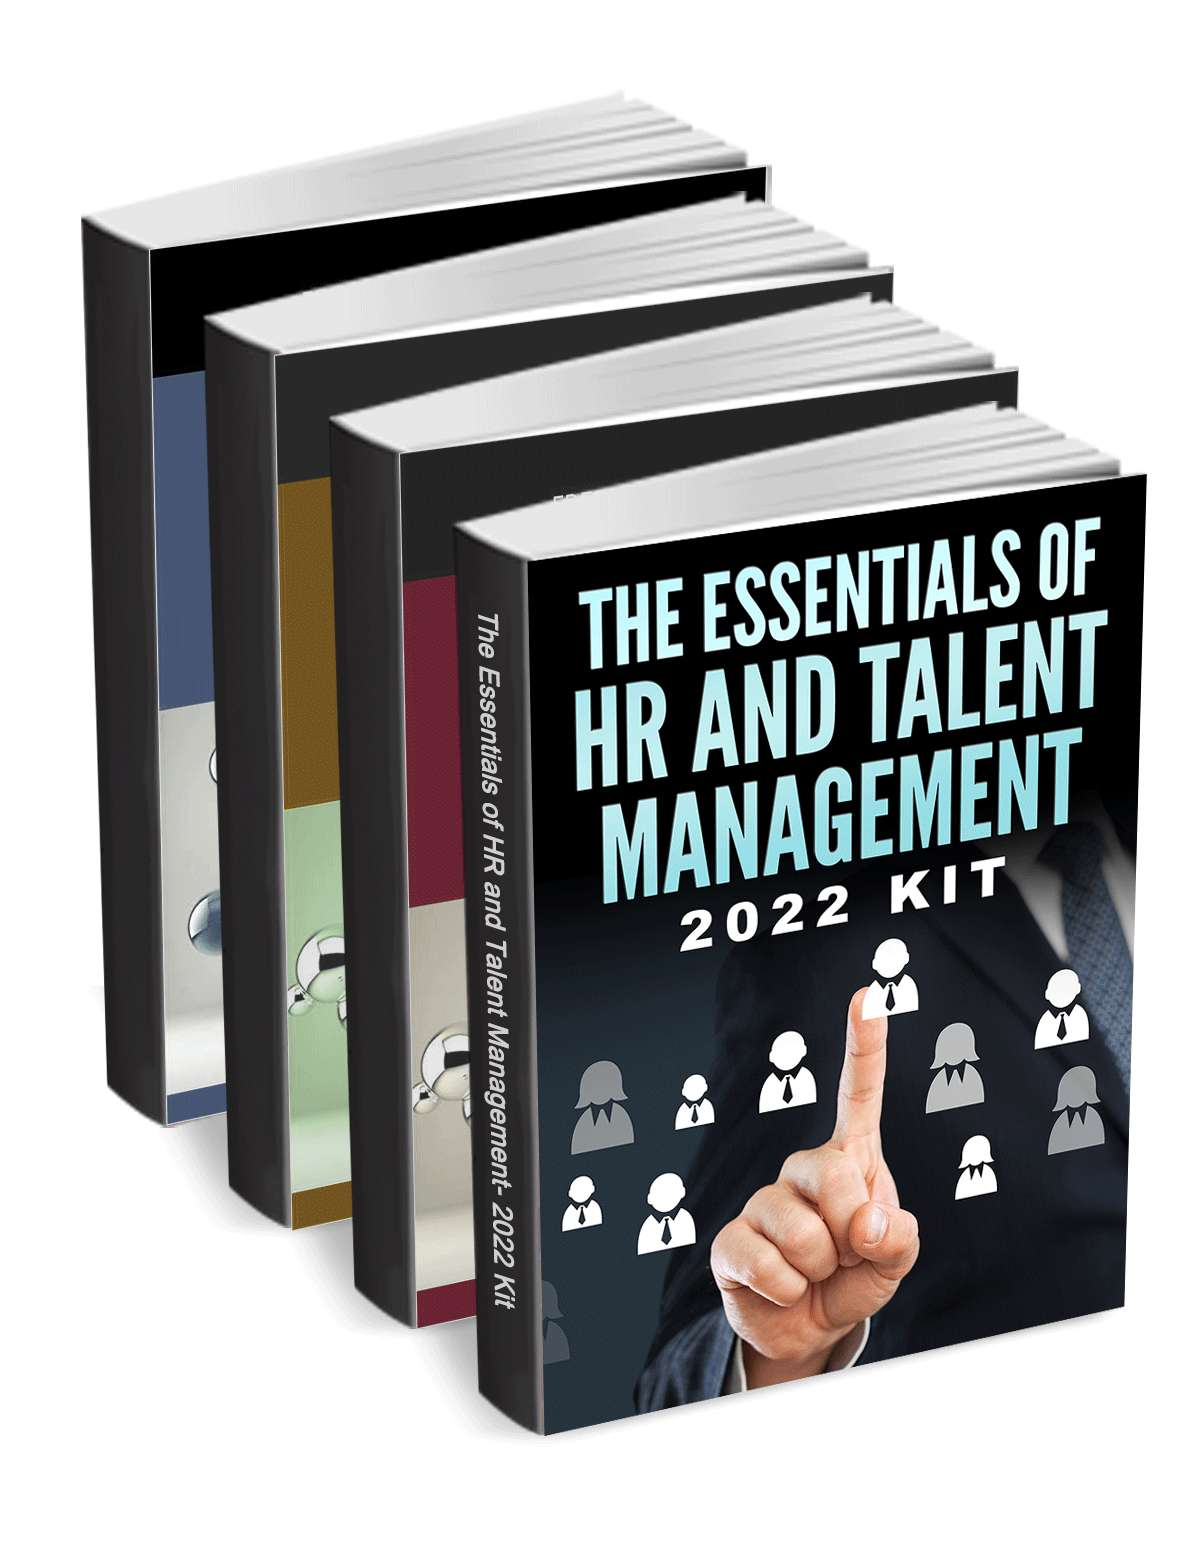 The Essentials of HR and Talent Management - 2017 Kit